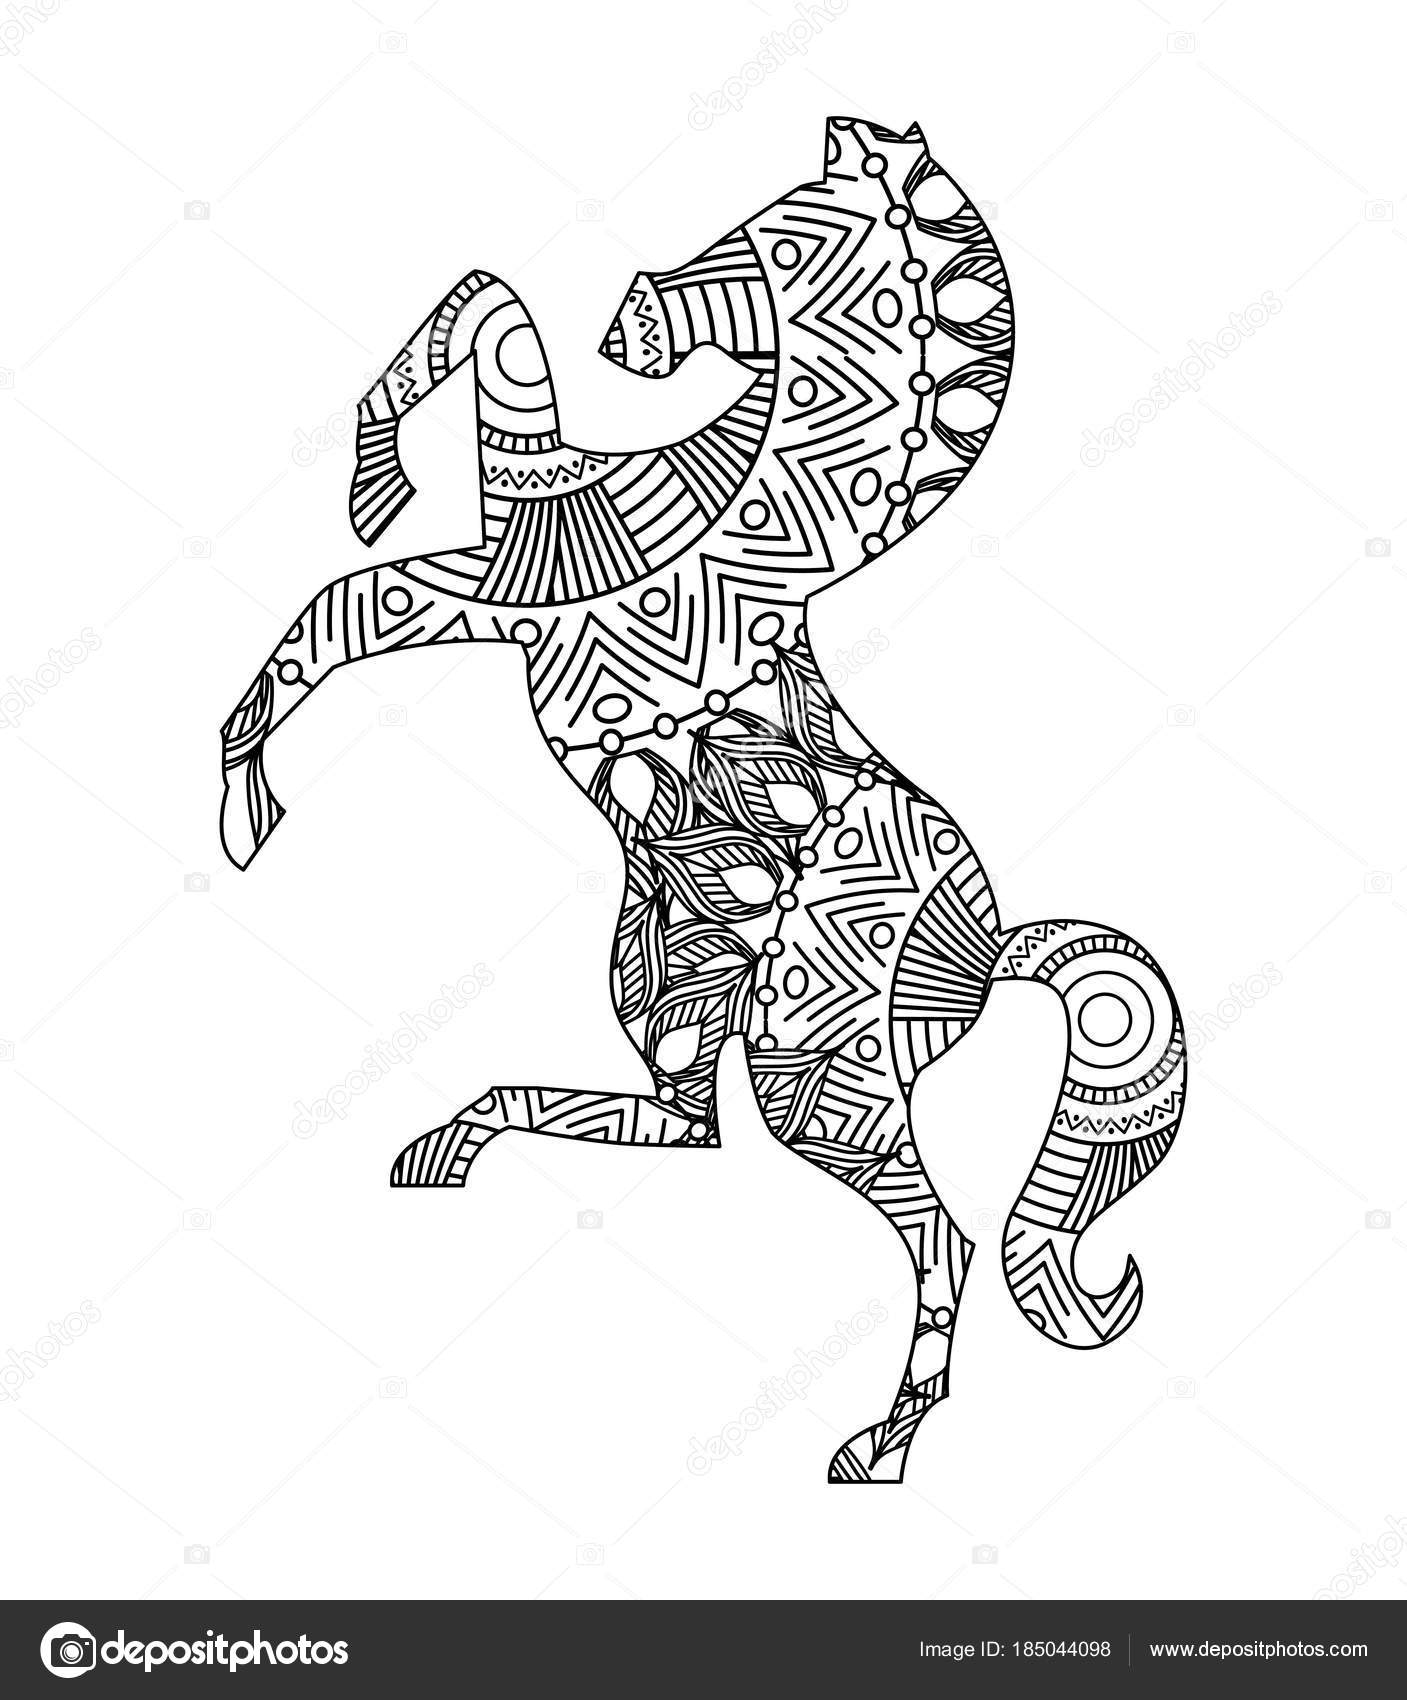 Coloriage Cheval Zen.Dessin Zentangle Pour Adultes De Coloriage Cheval Image